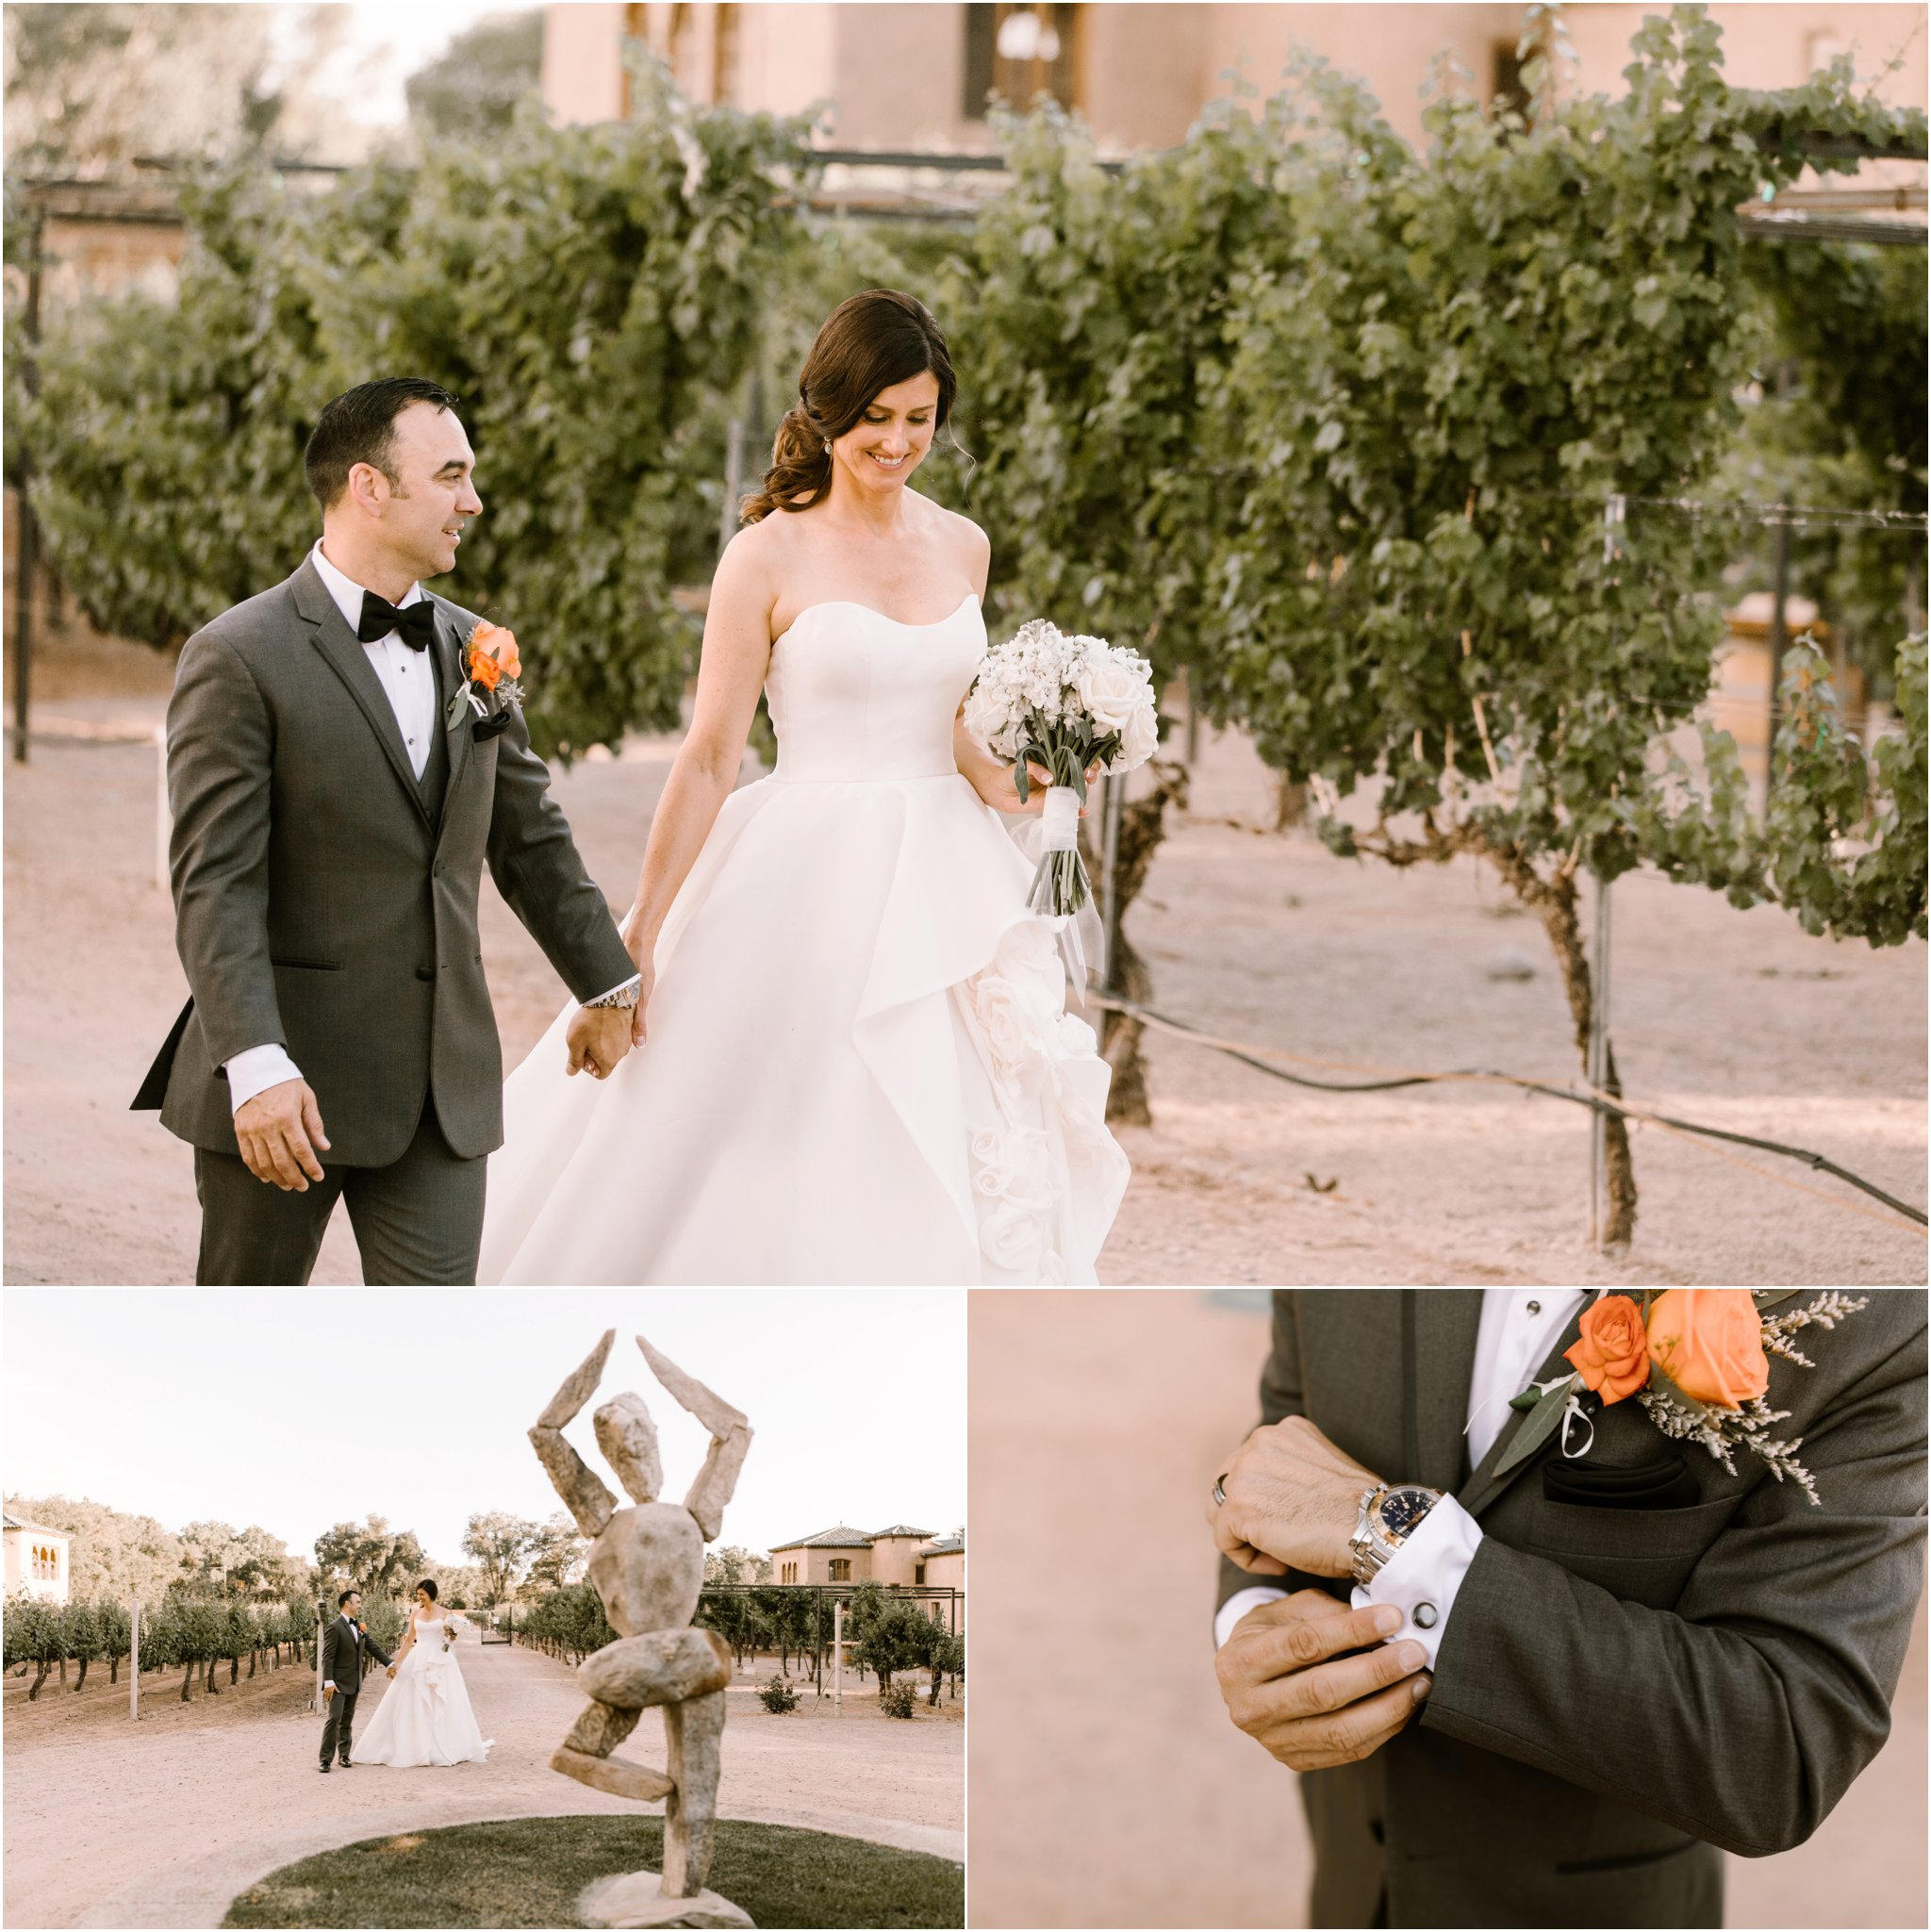 0218Casa Rodena Winery Wedding, Inn and Spa at Loretto wedding, Santa Fe wedding photographers, blue rose photography